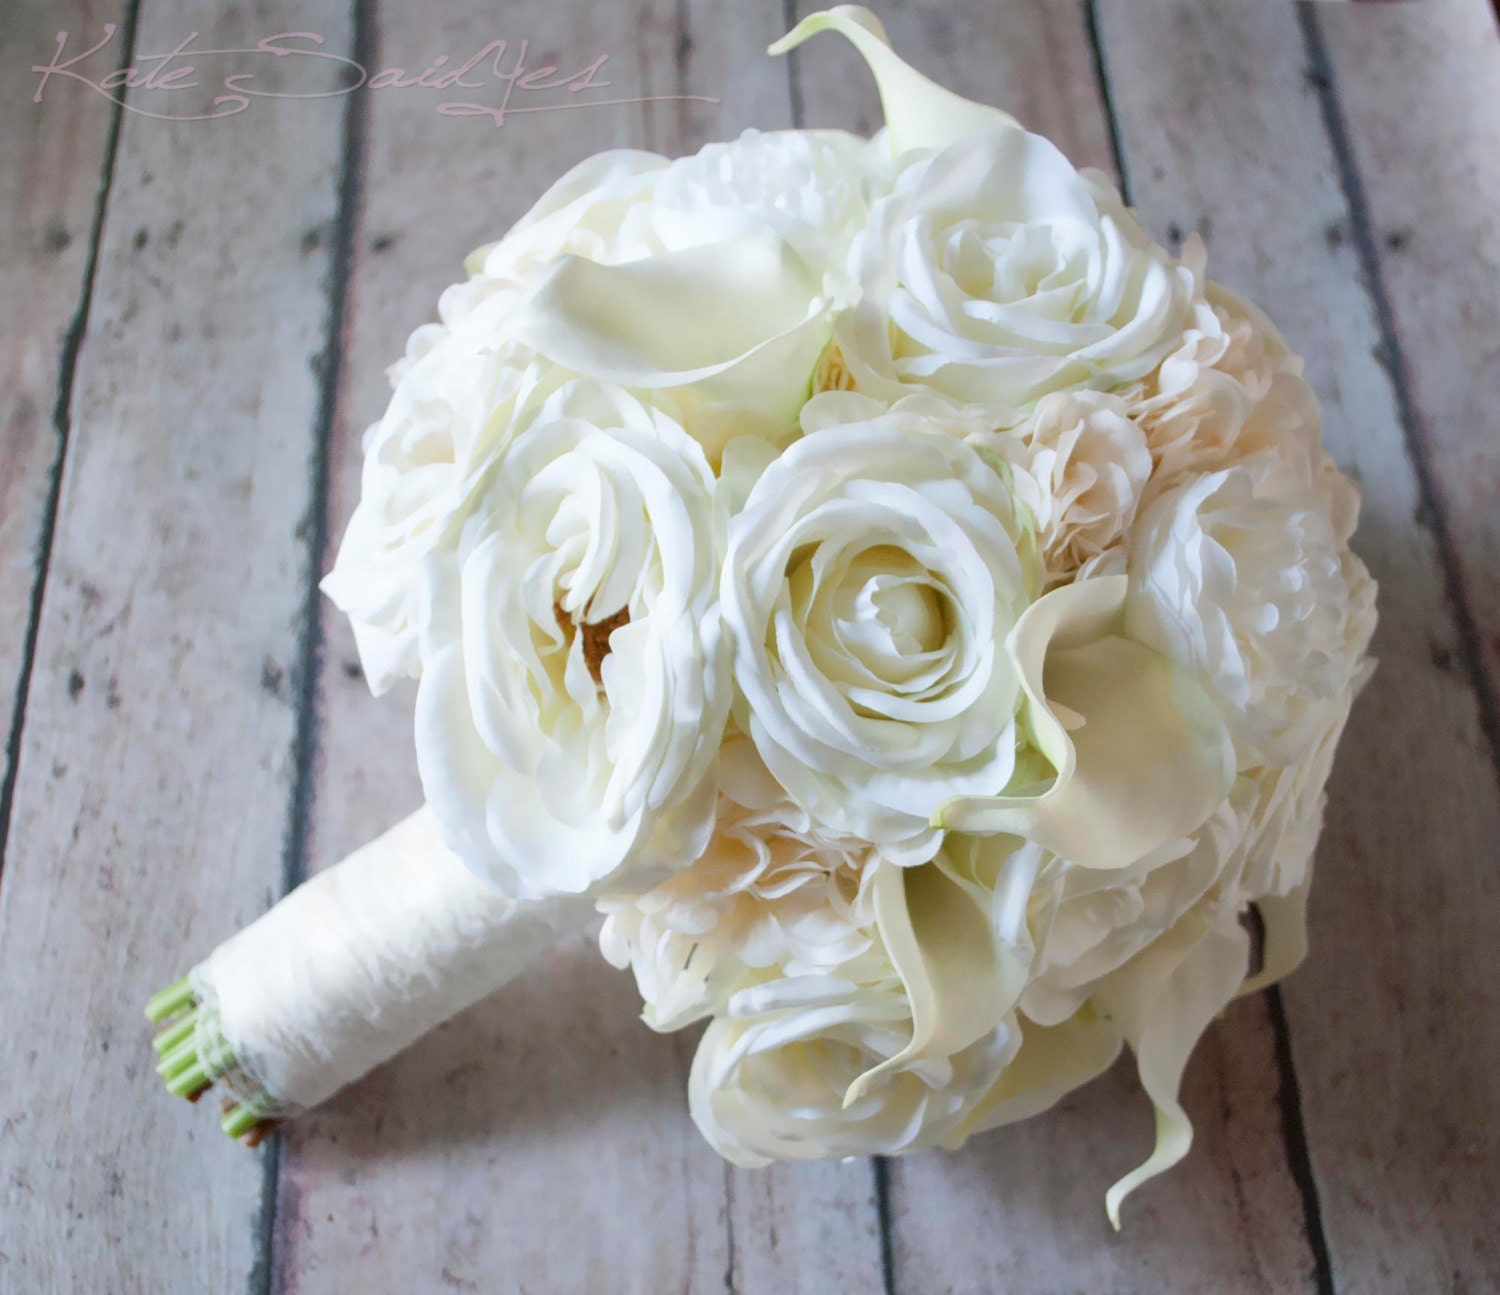 zoom - Garden Rose And Hydrangea Bouquet